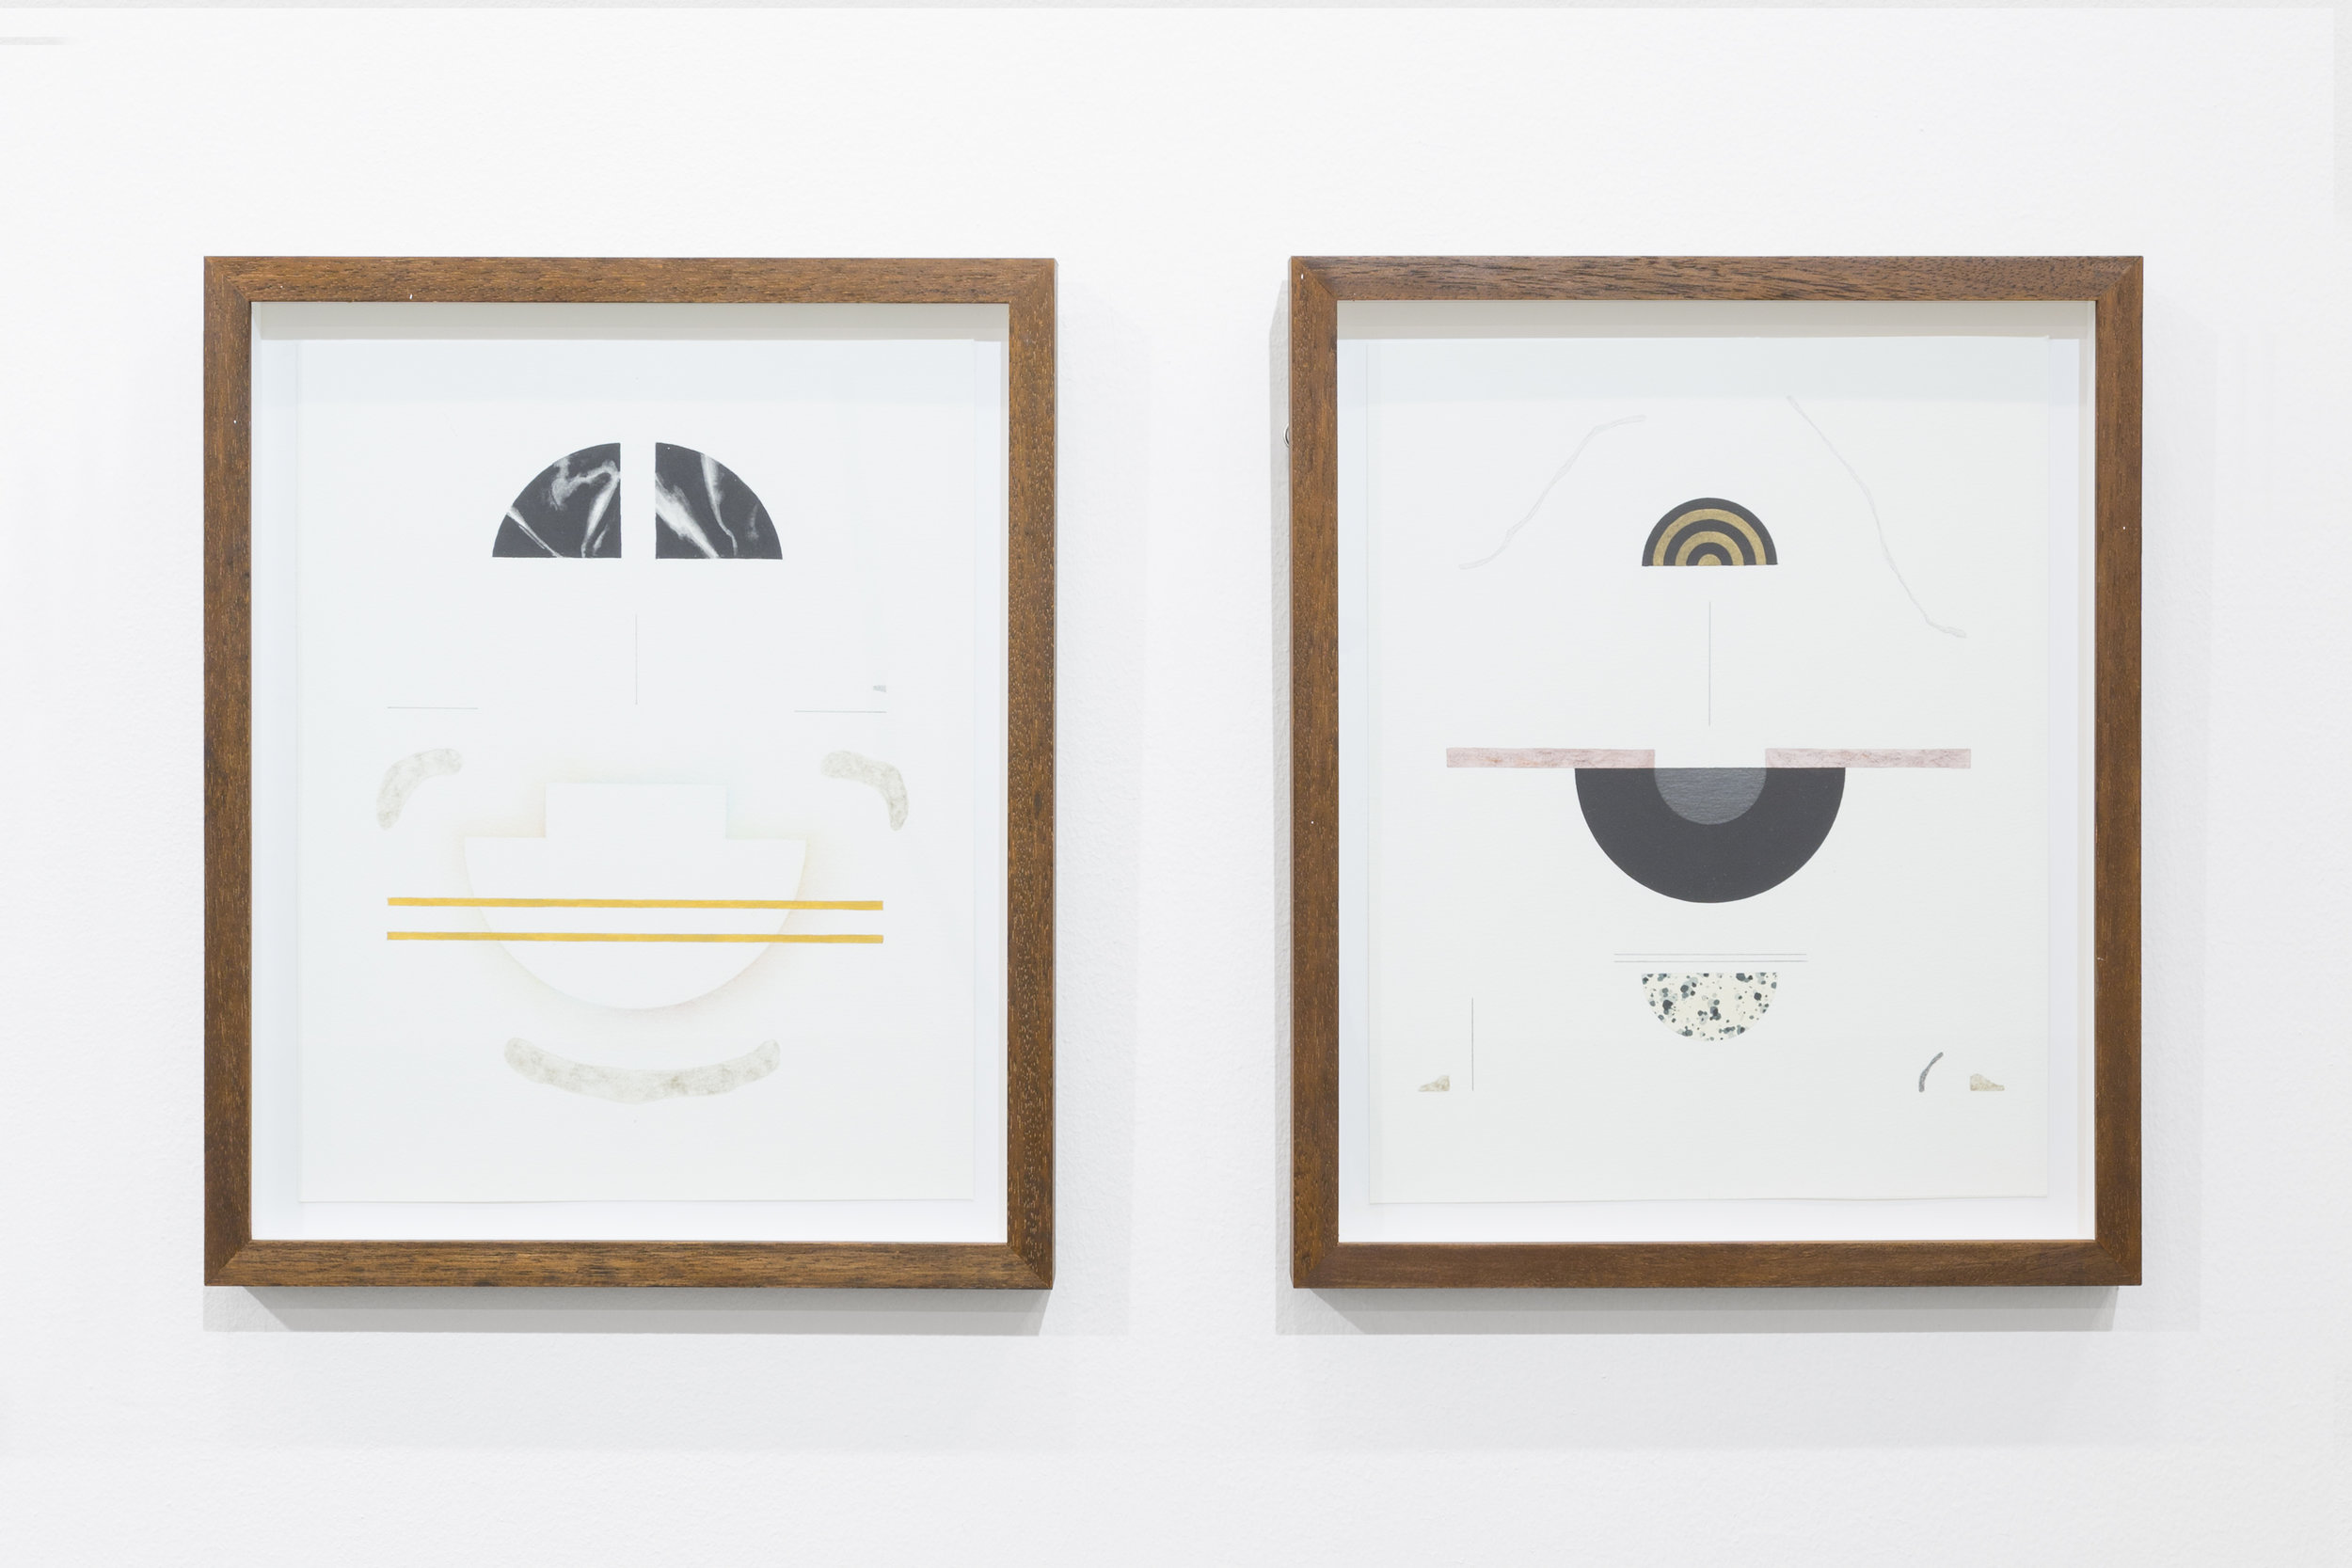 (L-R), Untitled (Order of materials 7), 2017, Mixed media on paper, 38 x 30 cm. Untitled (Order of materials 8), 2017, Mixed media on paper, 38 x 30 cm. Courtesy of artist and Green Art Gallery